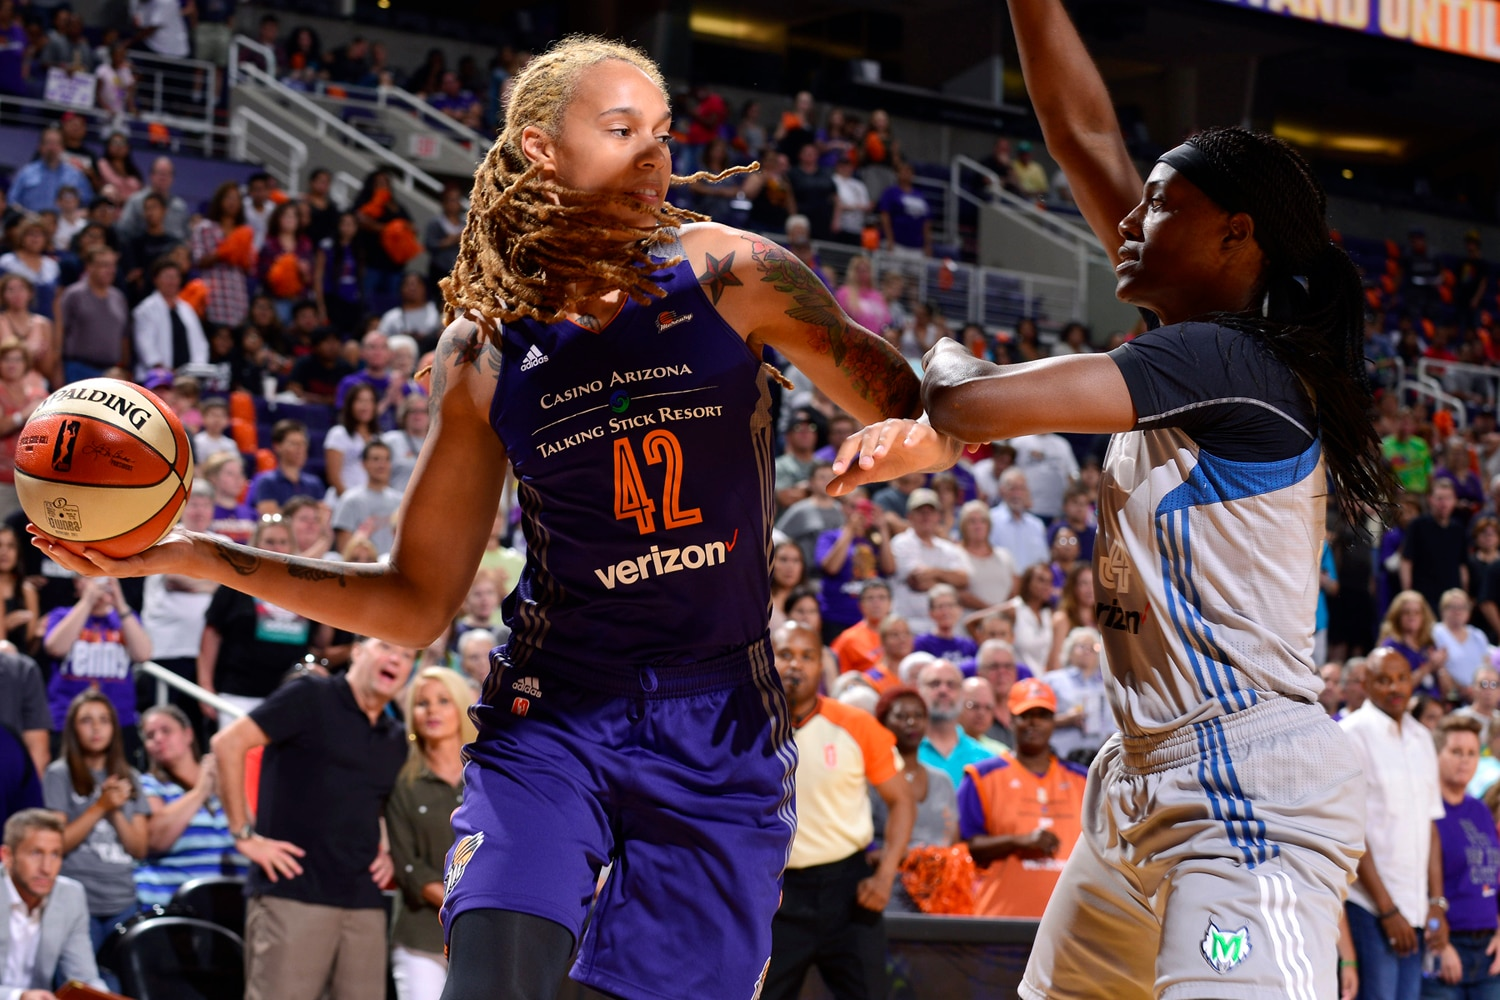 Phoenix Mercury Minnesota Lynx July 14, 2017 brittney griner